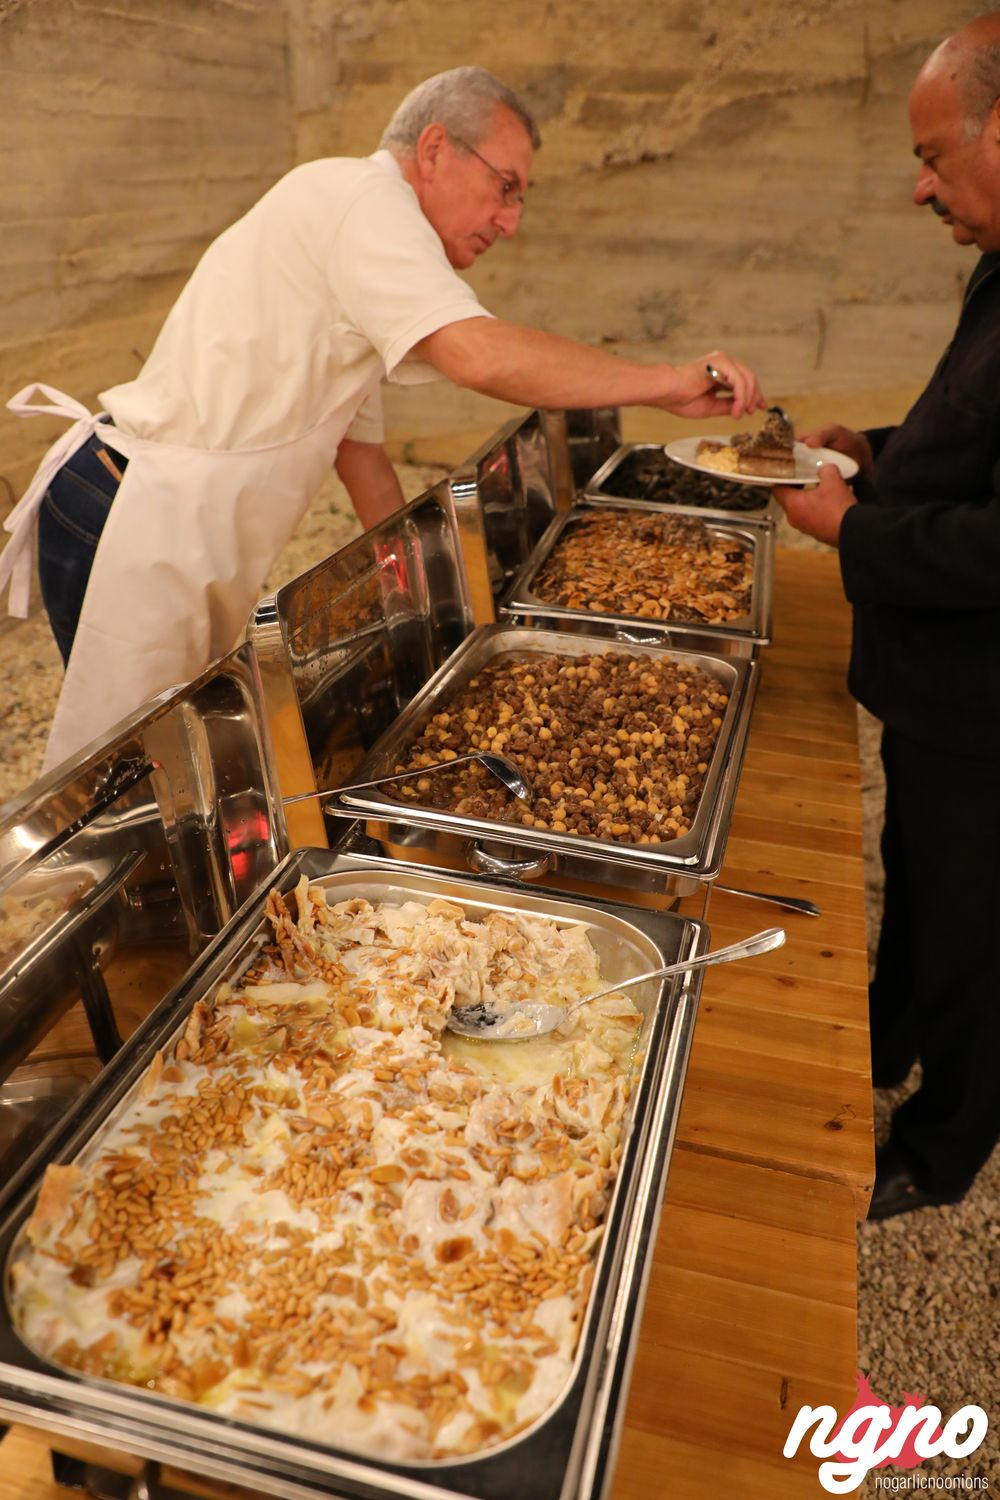 souk-el-akel-catering-private-event372017-07-29-12-25-25